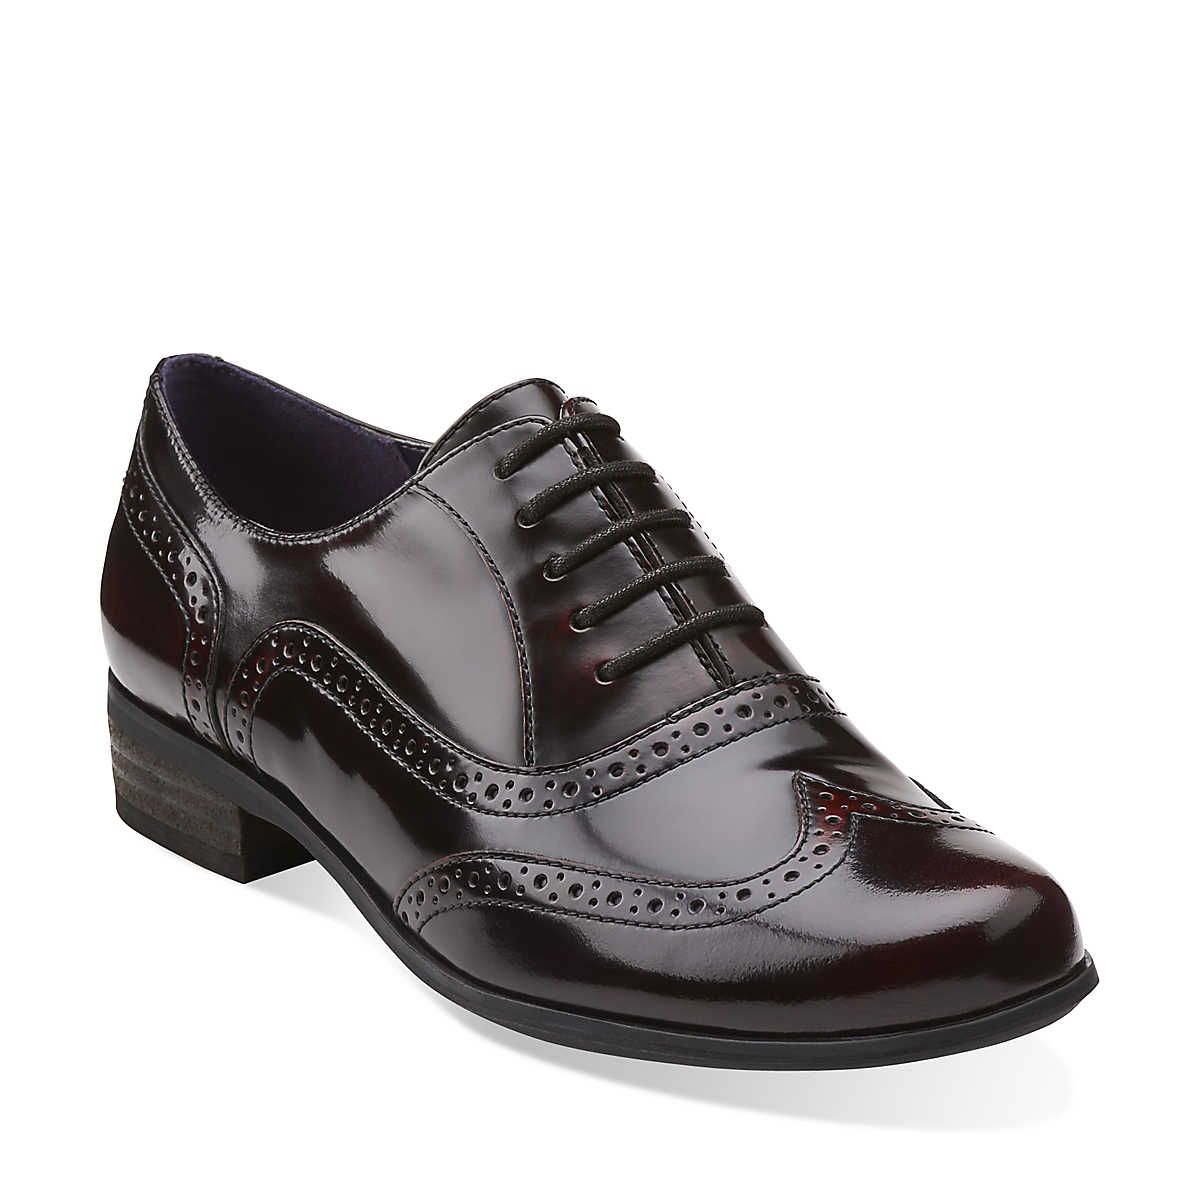 Hamble Oak in Burgundy Patent Leather Women's Shoes from